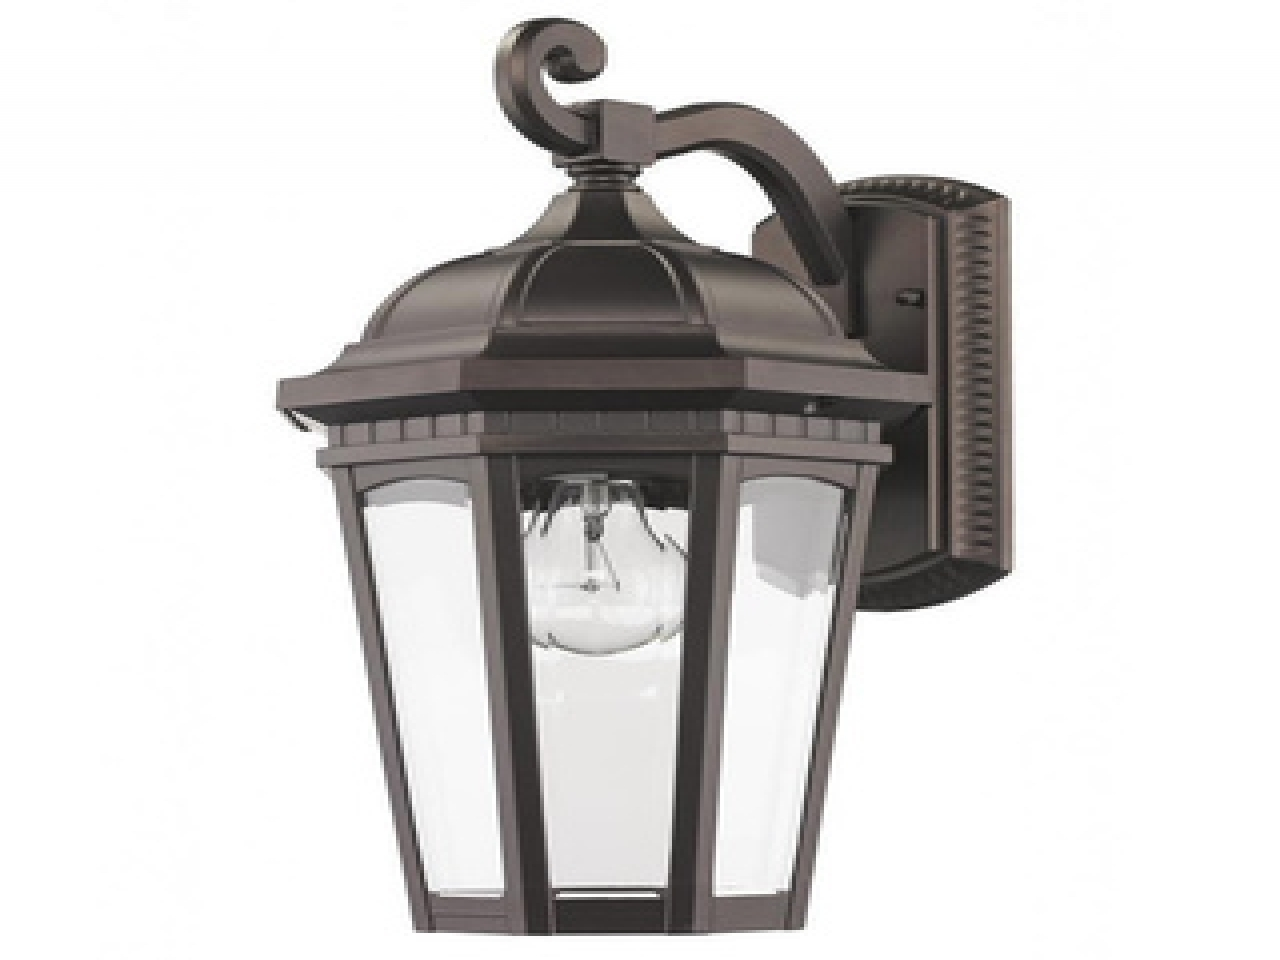 Widely Used Outdoor Wall Lighting At Ebay Pertaining To Light : Lantern Outdoor Wall Mount Lights Simple White Decoration (View 20 of 20)